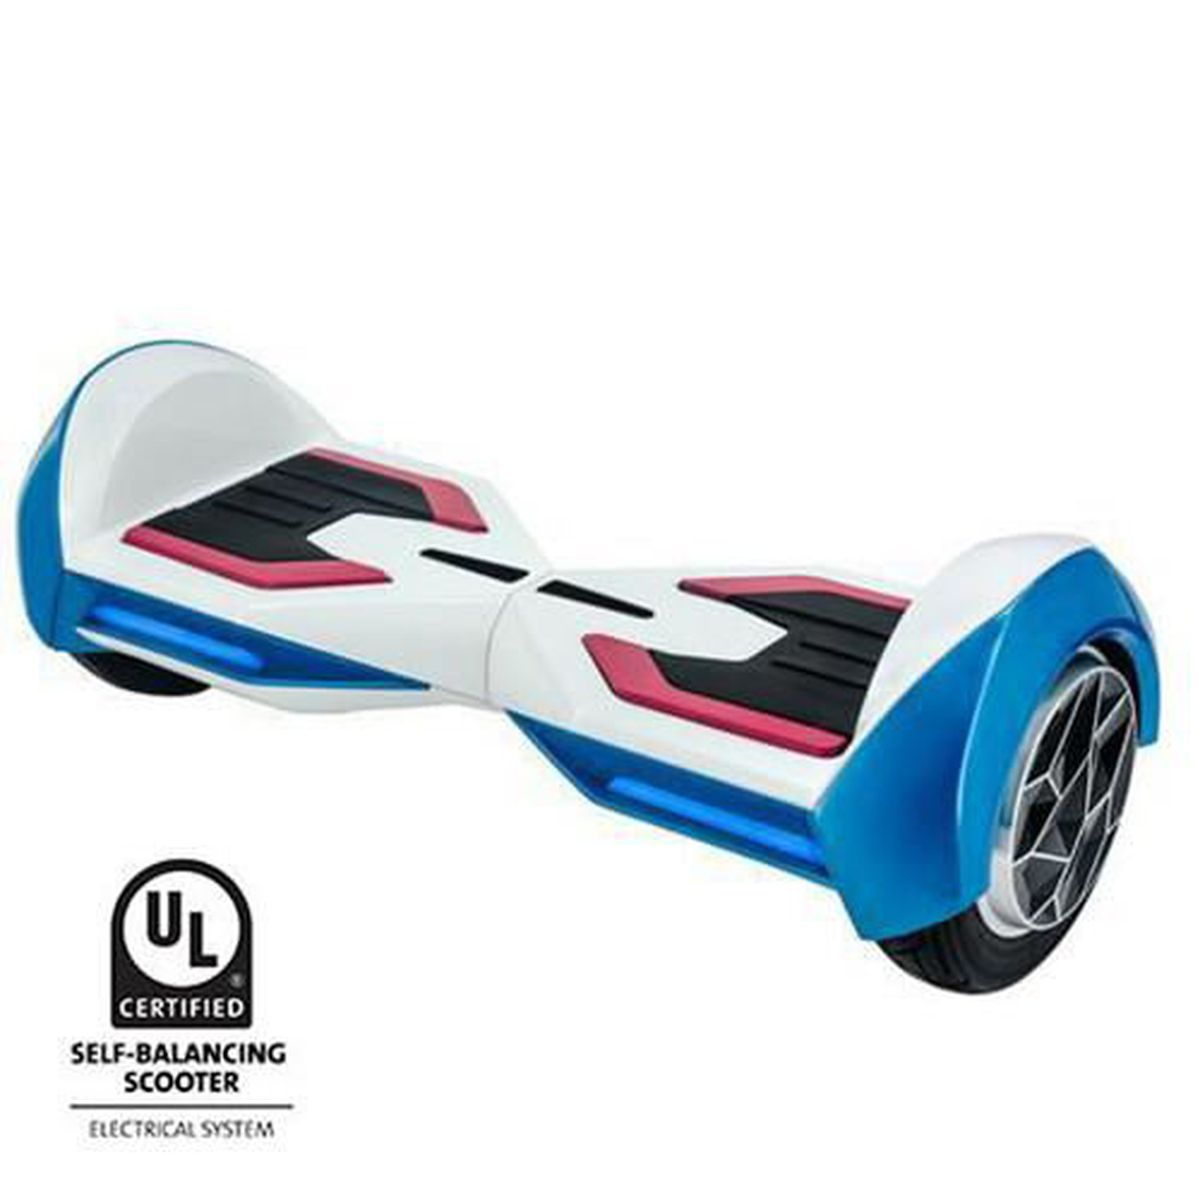 hoverboard huracan blanc bluetooth 8 pouces achat. Black Bedroom Furniture Sets. Home Design Ideas